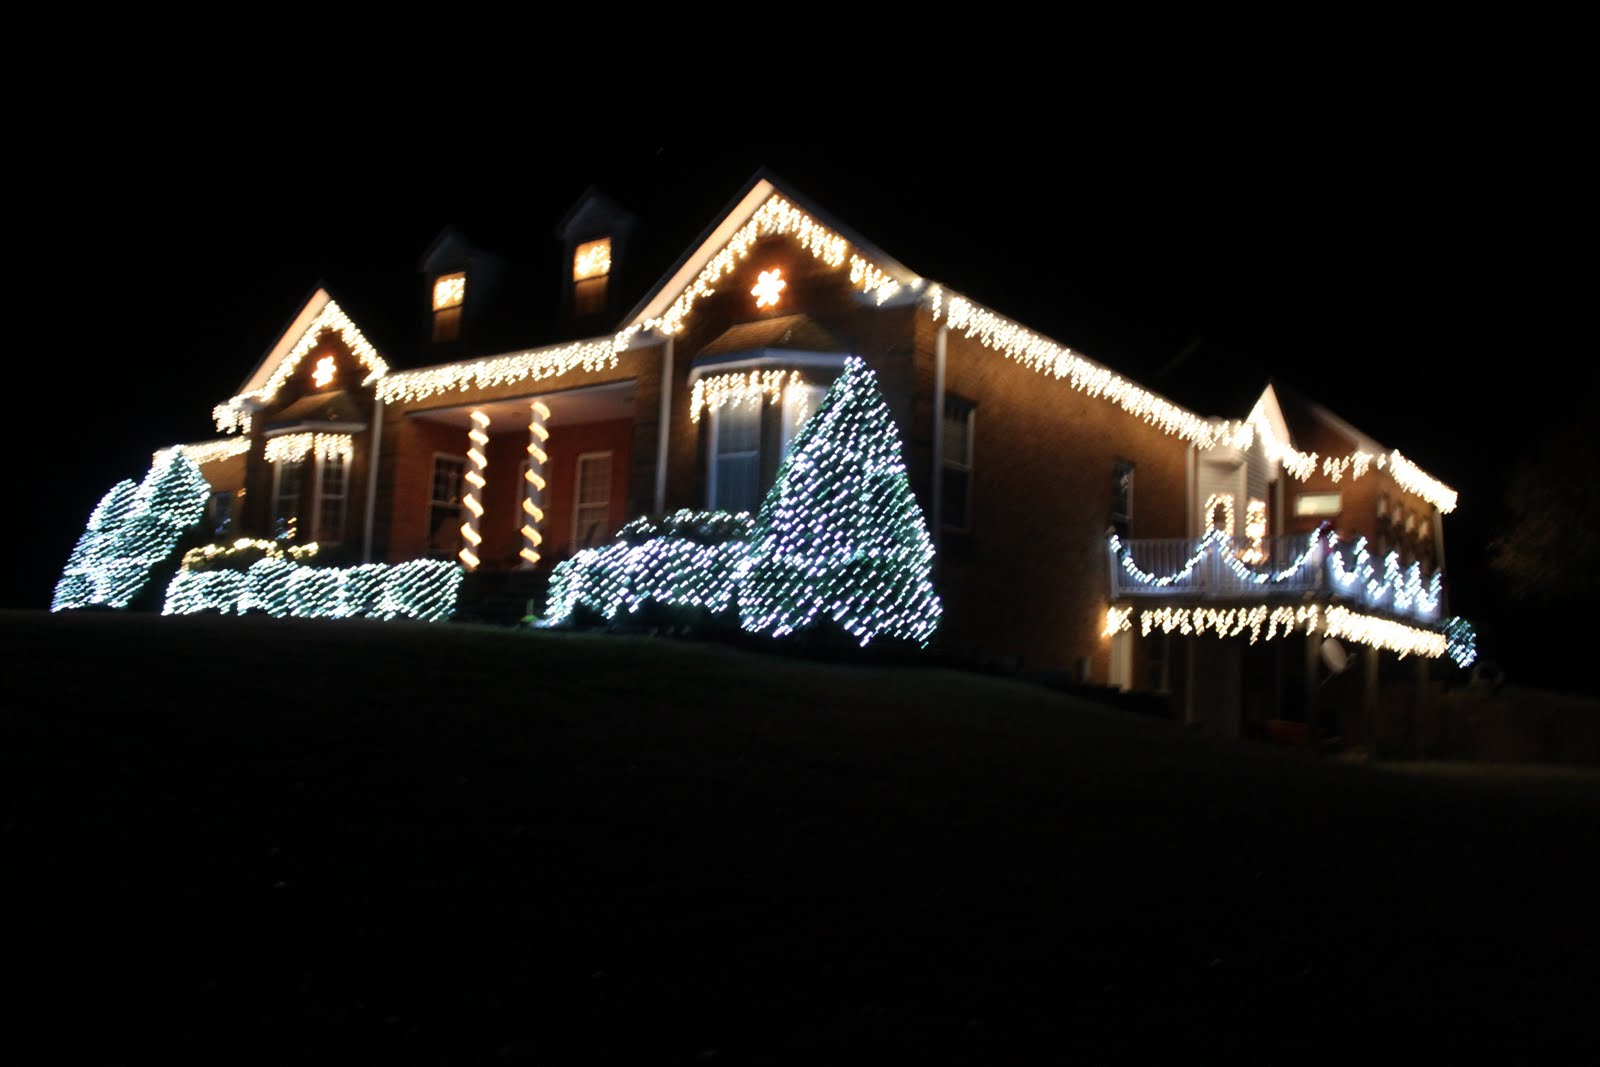 Life on Grandma's Hill: Christmas Lights